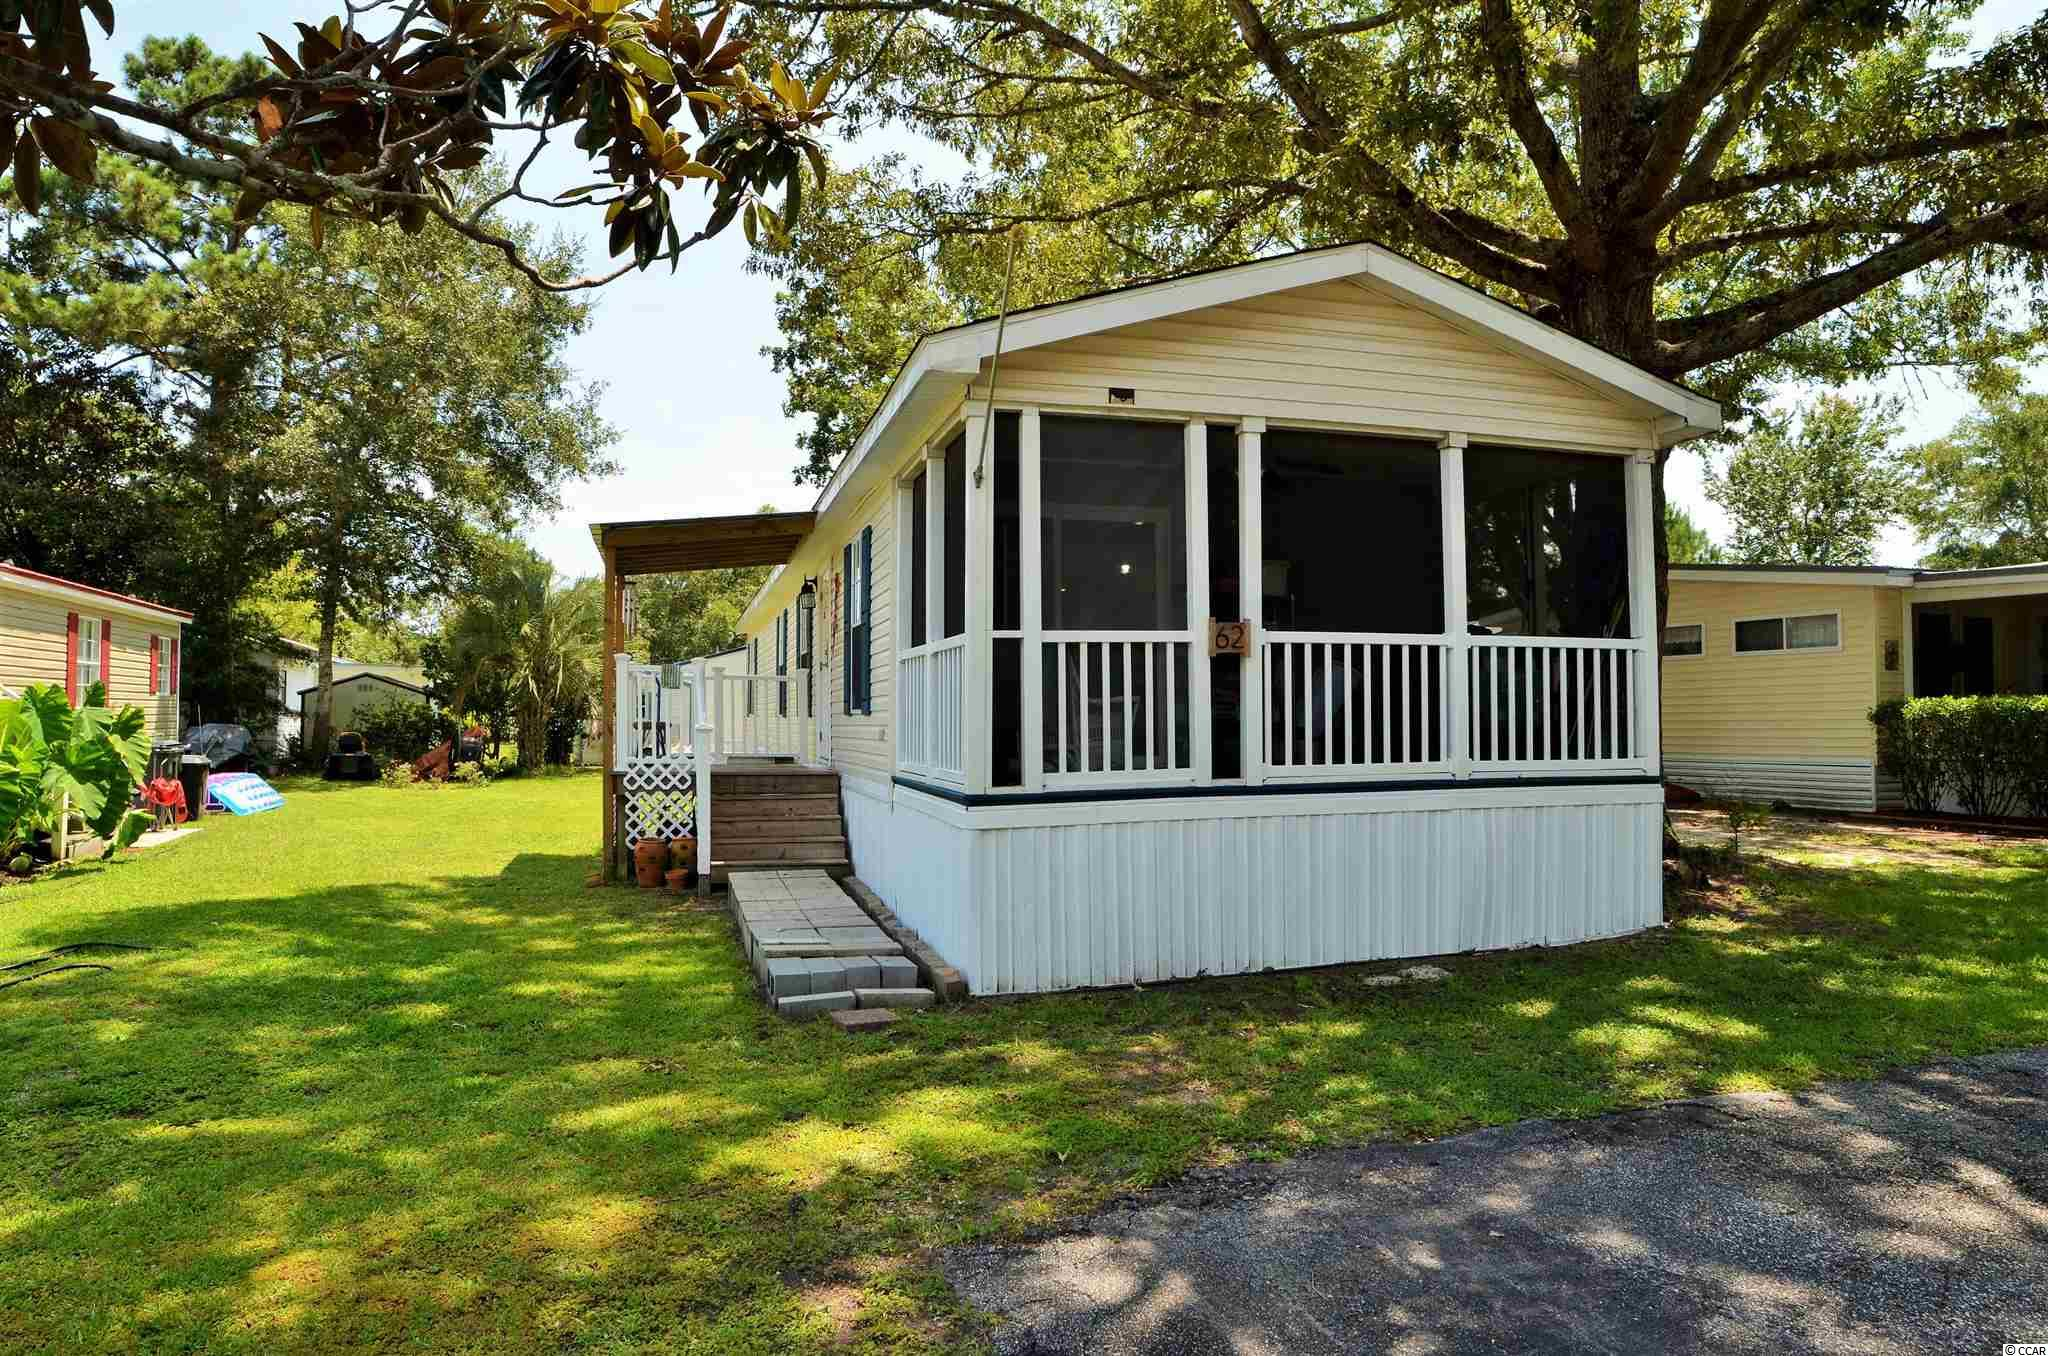 Back on market through no fault of seller's home. Location, Location, Location, this stunning remodeled home in Murrells Inlet is in the highly sought-after 55+ Captains Cove Community a few miles North of Pawley's Island and a stone's throw to the Marshwalk and Huntington State Park! This beautiful, single wide manufactured home features 2 bedrooms, 2 bathrooms. The open floor plan features an open kitchen and living room space, beams, high ceilings, vinyl flooring and shiplap throughout. The newly remodeled kitchen comes with a new stainless-steel range hood, white subway tiled backsplash, beautiful Carerra marble countertops, new light fixtures, and custom shelving. There is also a very spacious screened in porch just off the kitchen so you can enjoy your morning coffee or evening dinner and a metal roof covered private side deck with new entry door. The shiplap and custom shelving have been carried throughout the bathrooms and laundry room to compliment the barn doors in the master bedroom closet and bath. The Goodman HVAC system has just been serviced and is running great. This is one of the Newest Mobile Homes listed in the last 60 days in Captains Cove don't let it slip by!!